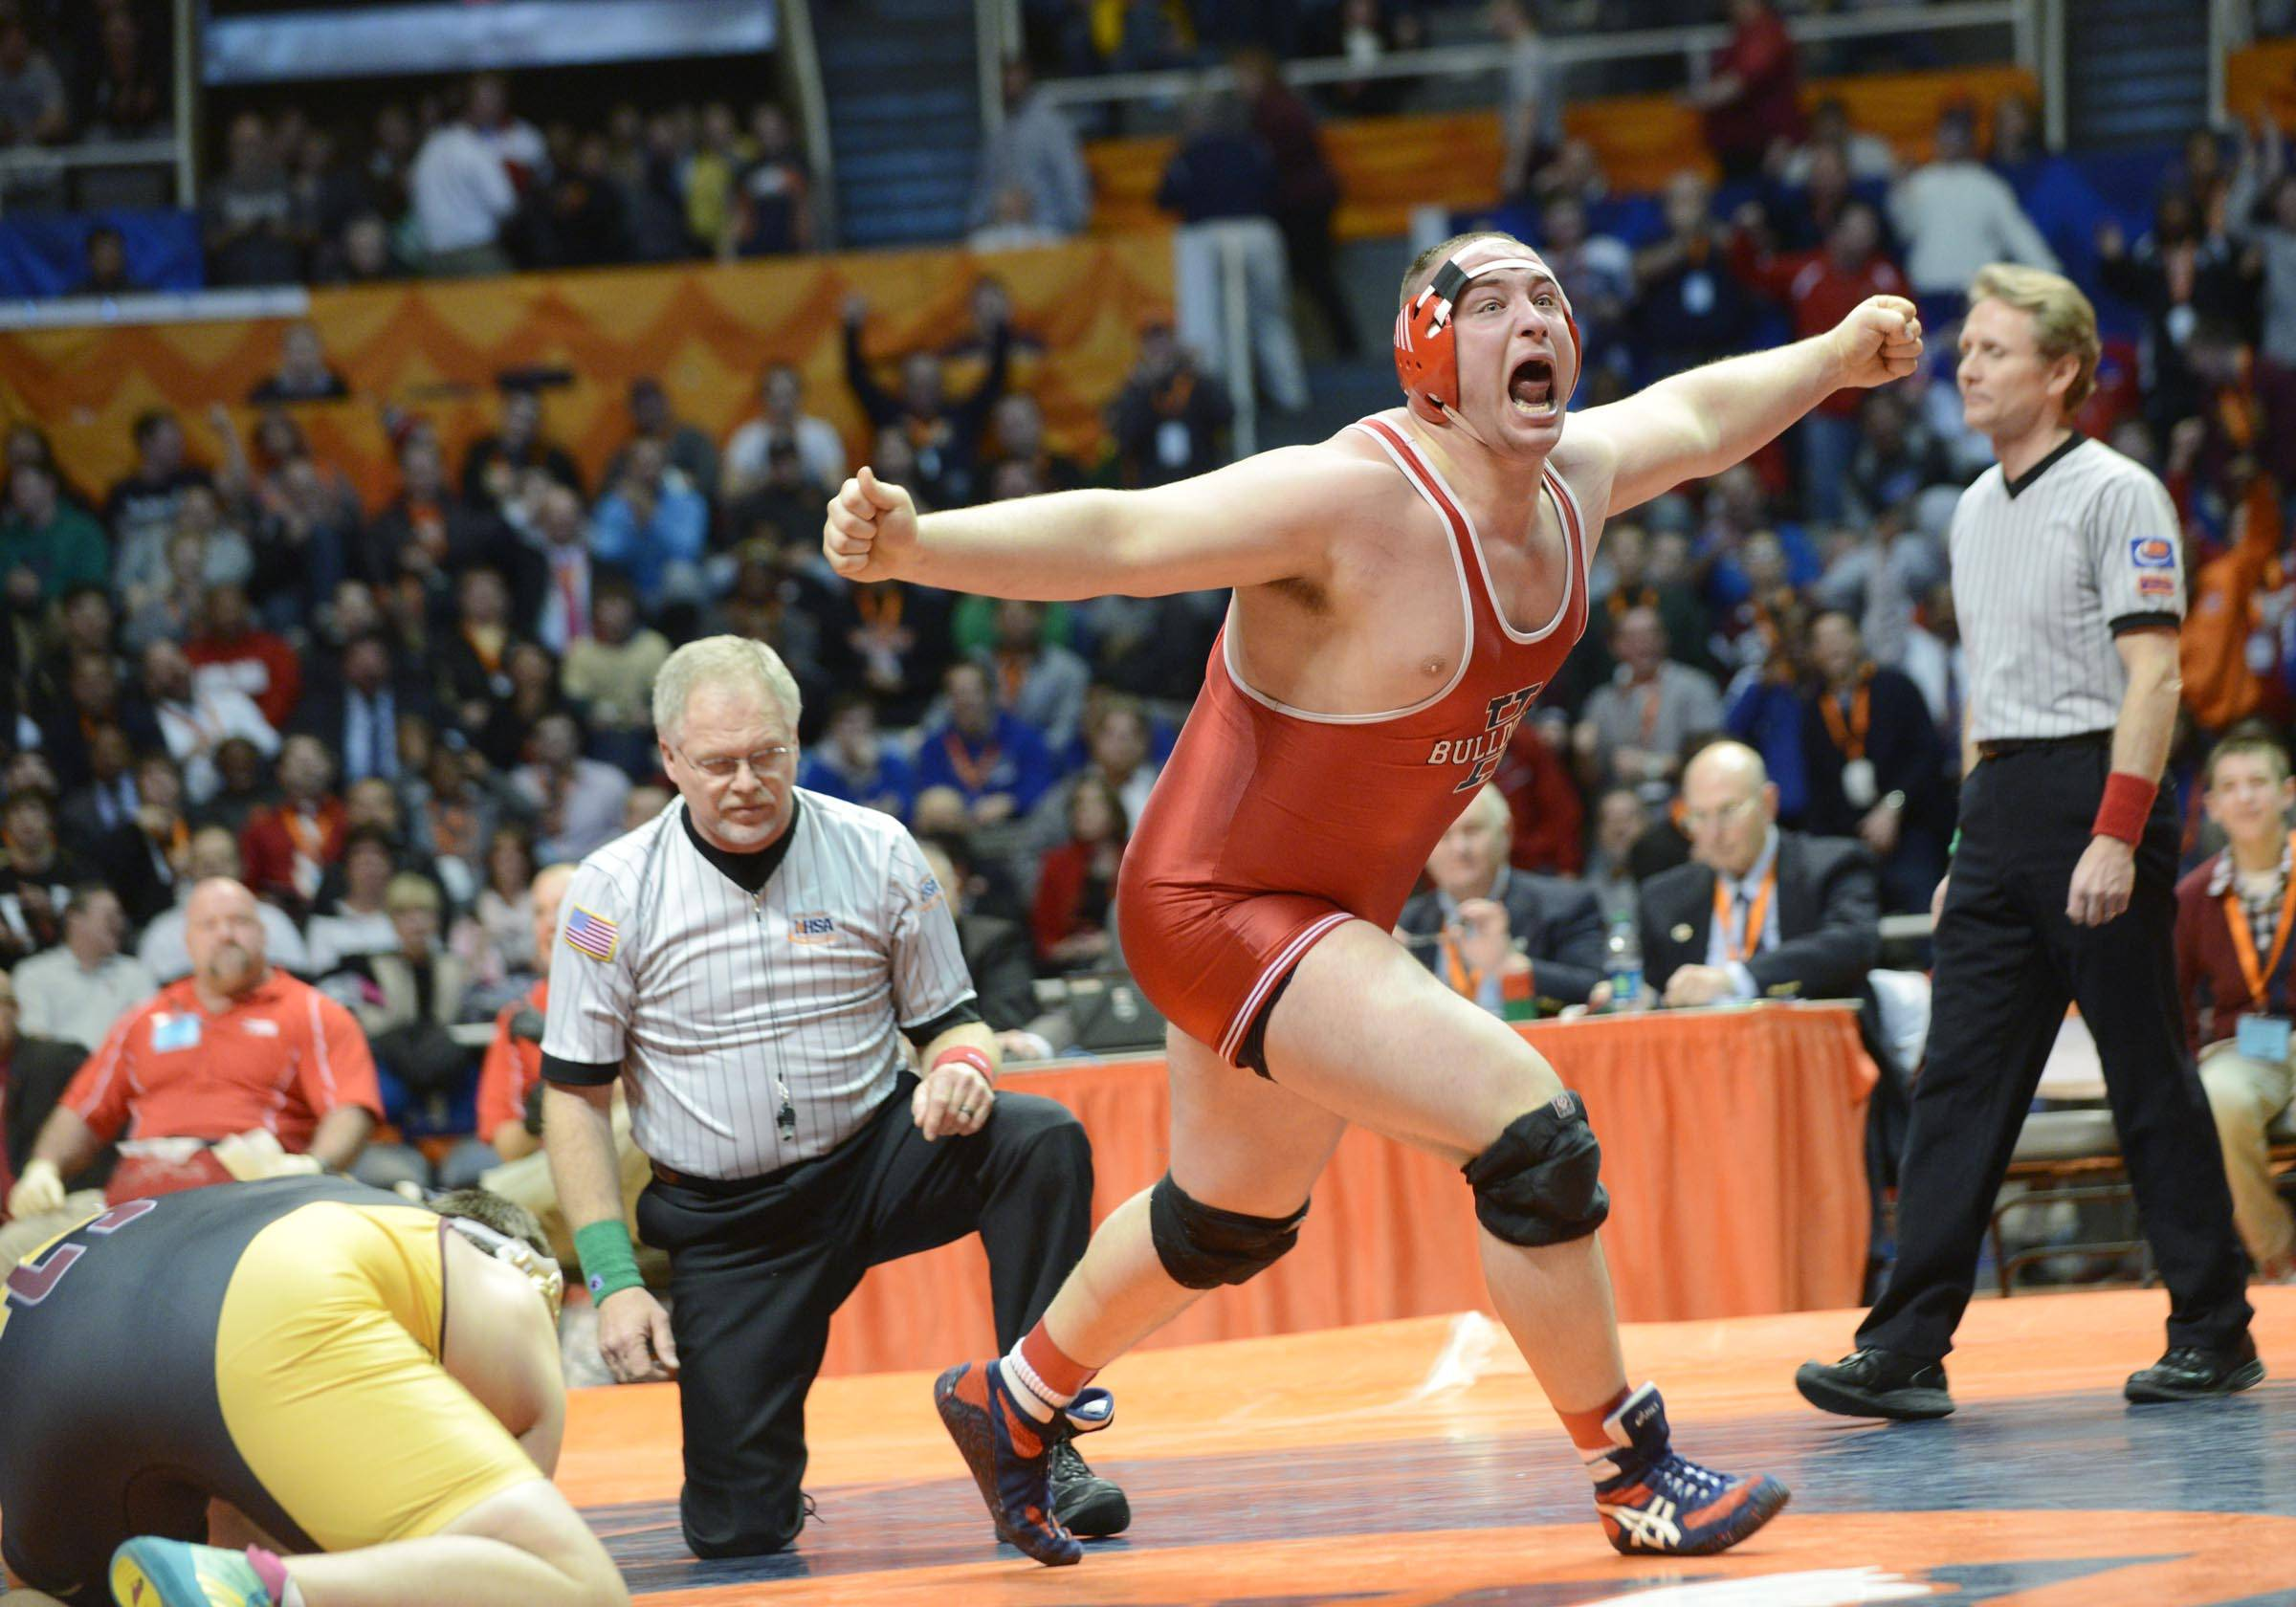 Highland High School's Tanner Farmer celebrates his win against Montini's Michael Johnshon Saturday in the 285-pound Class 2A championship match in Champaign.